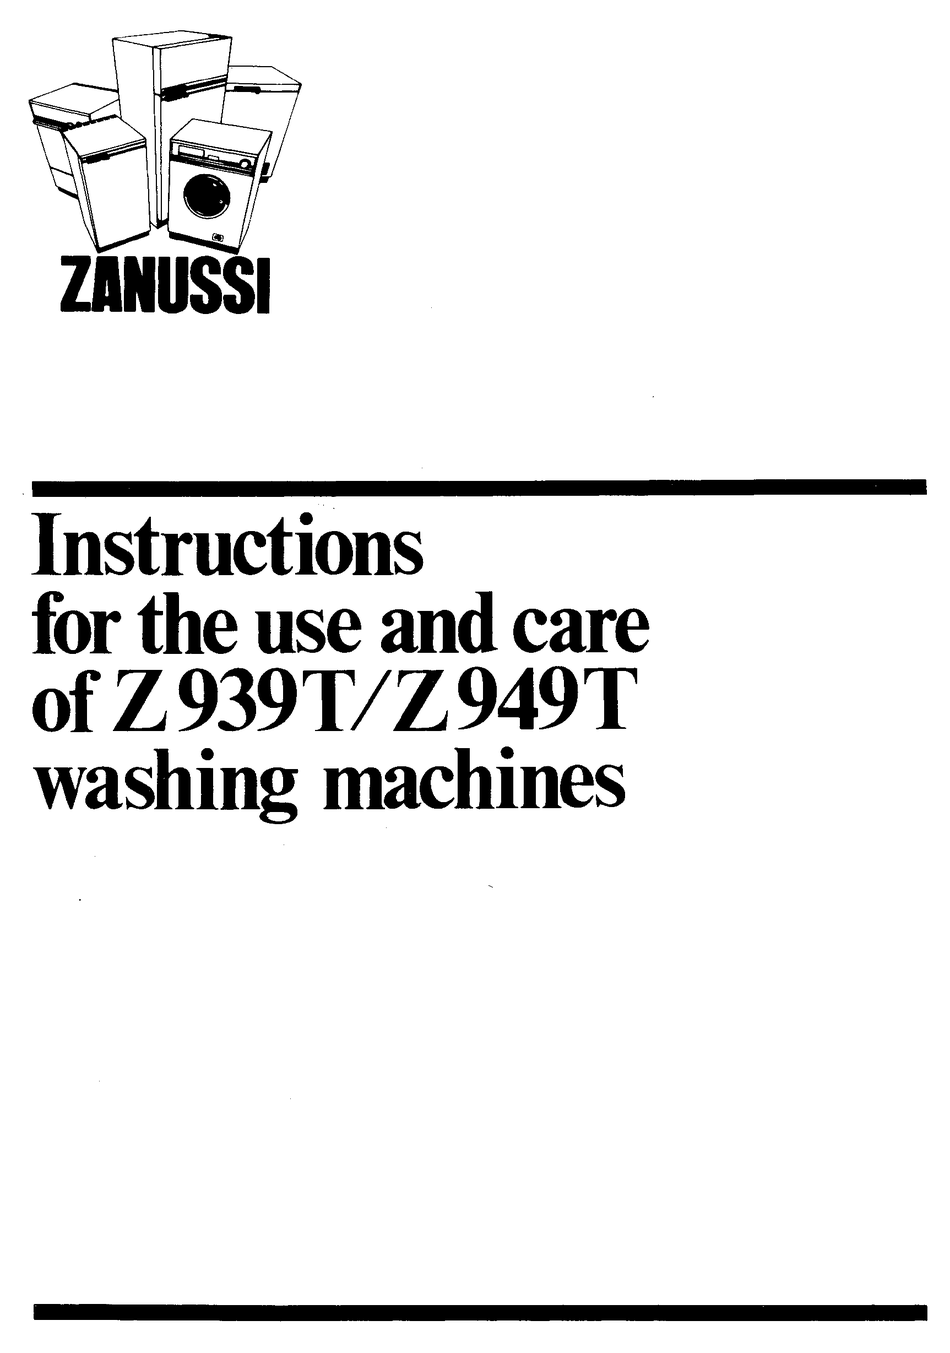 ZANUSSI Z939T INSTRUCTIONS FOR THE USE AND CARE Pdf